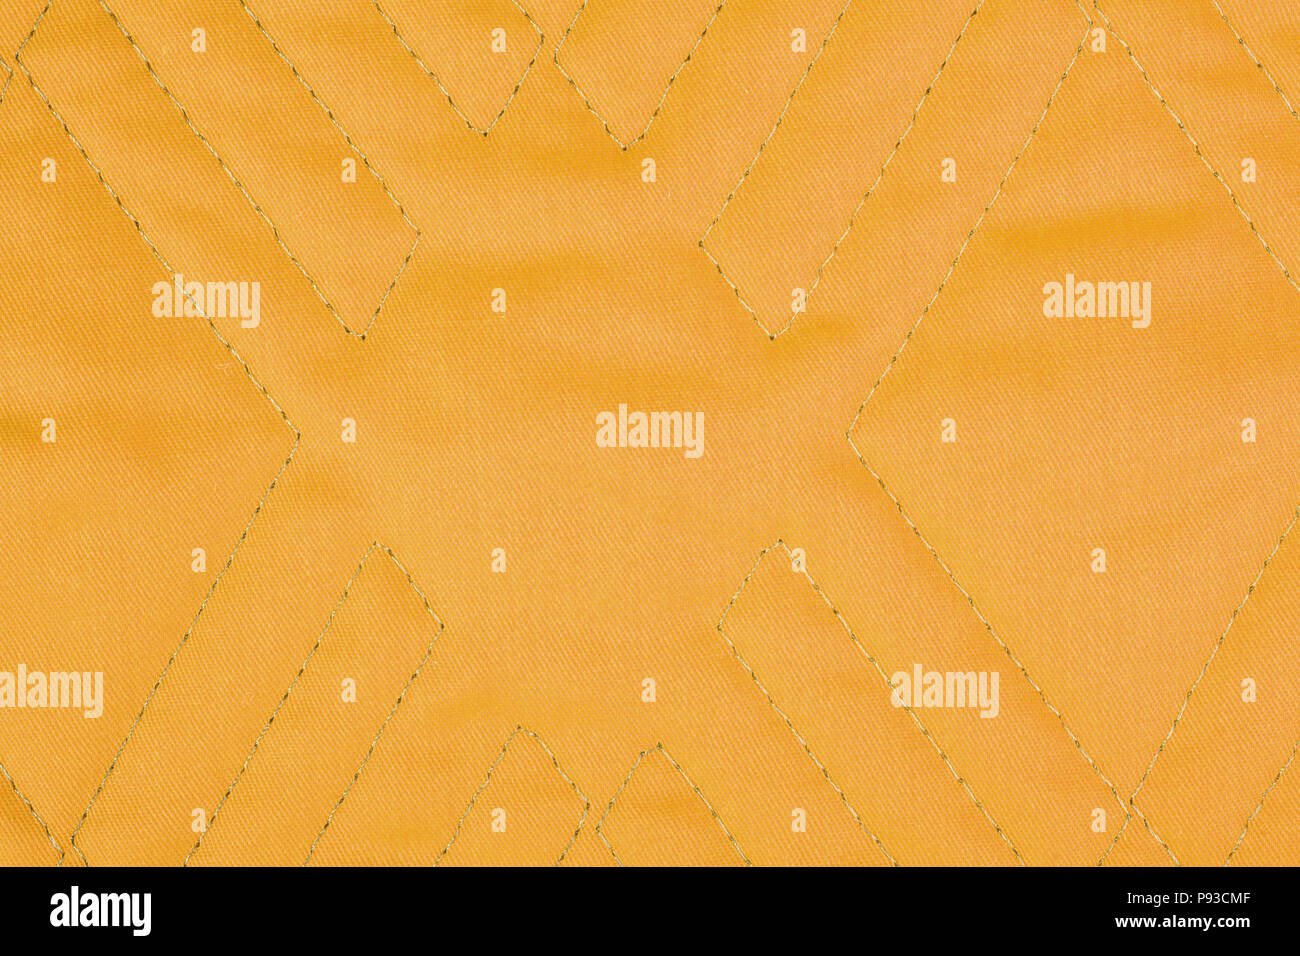 Quilted Fabric Orange Quilted Fabric Texture With Geometric Pattern Stock Photo